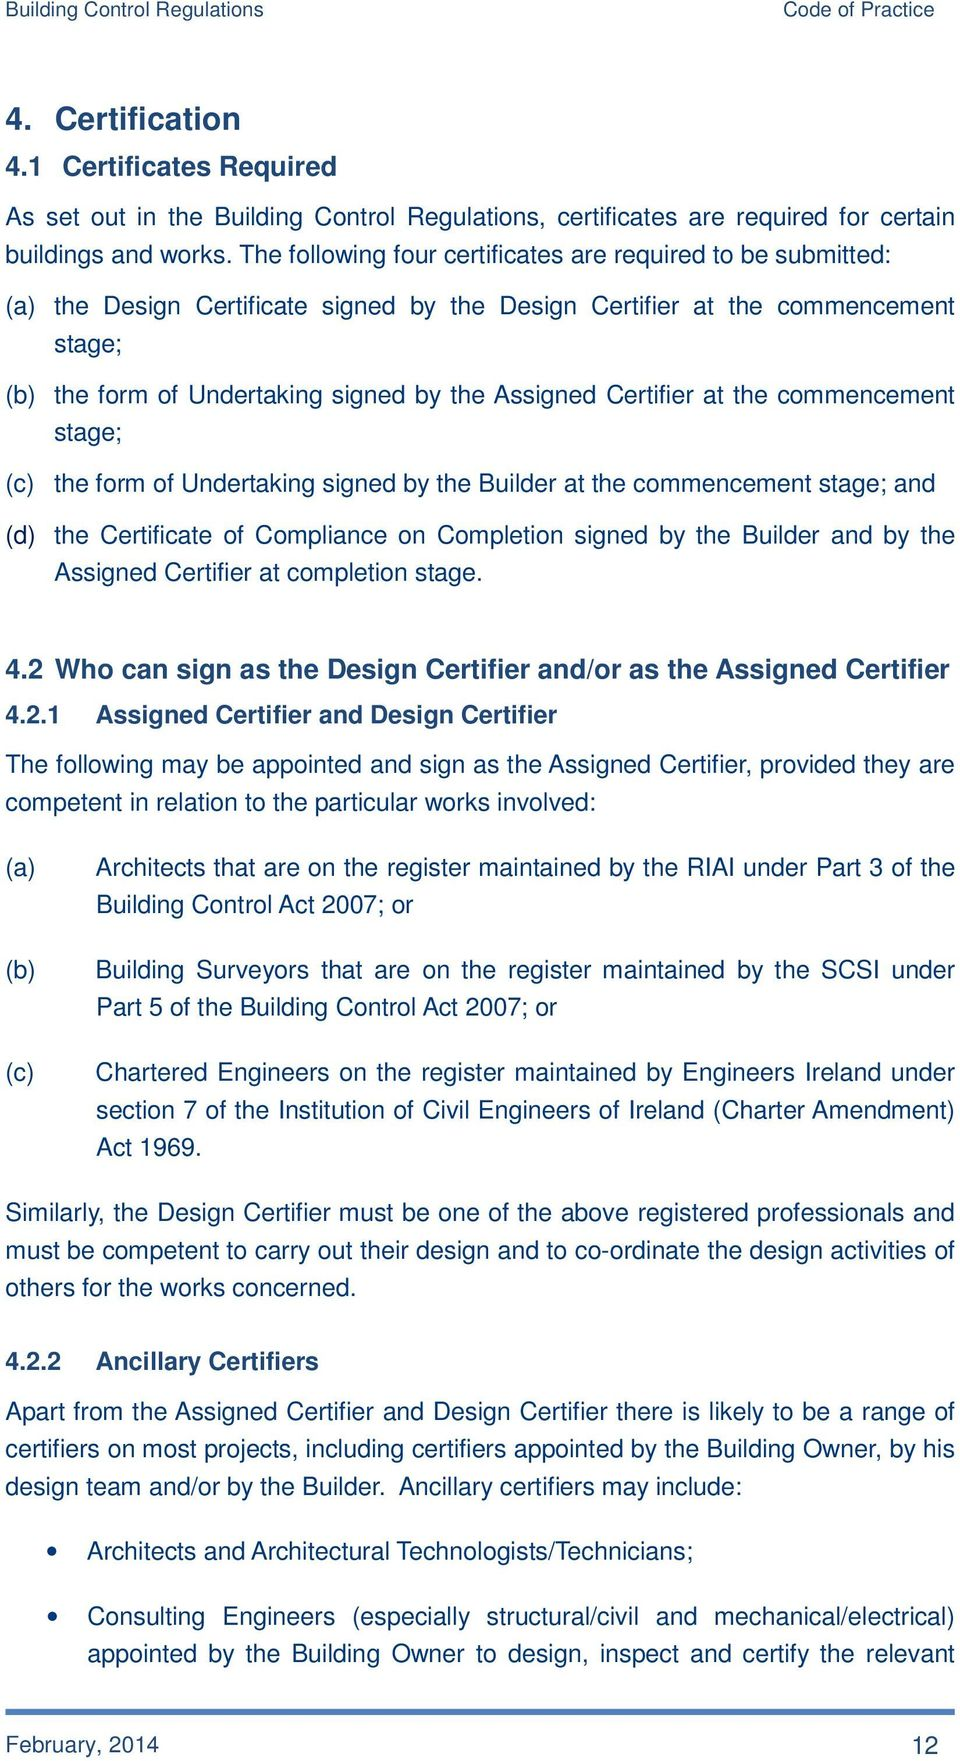 Certifier at the commencement stage; (c) the form of Undertaking signed by the Builder at the commencement stage; and (d) the Certificate of Compliance on Completion signed by the Builder and by the